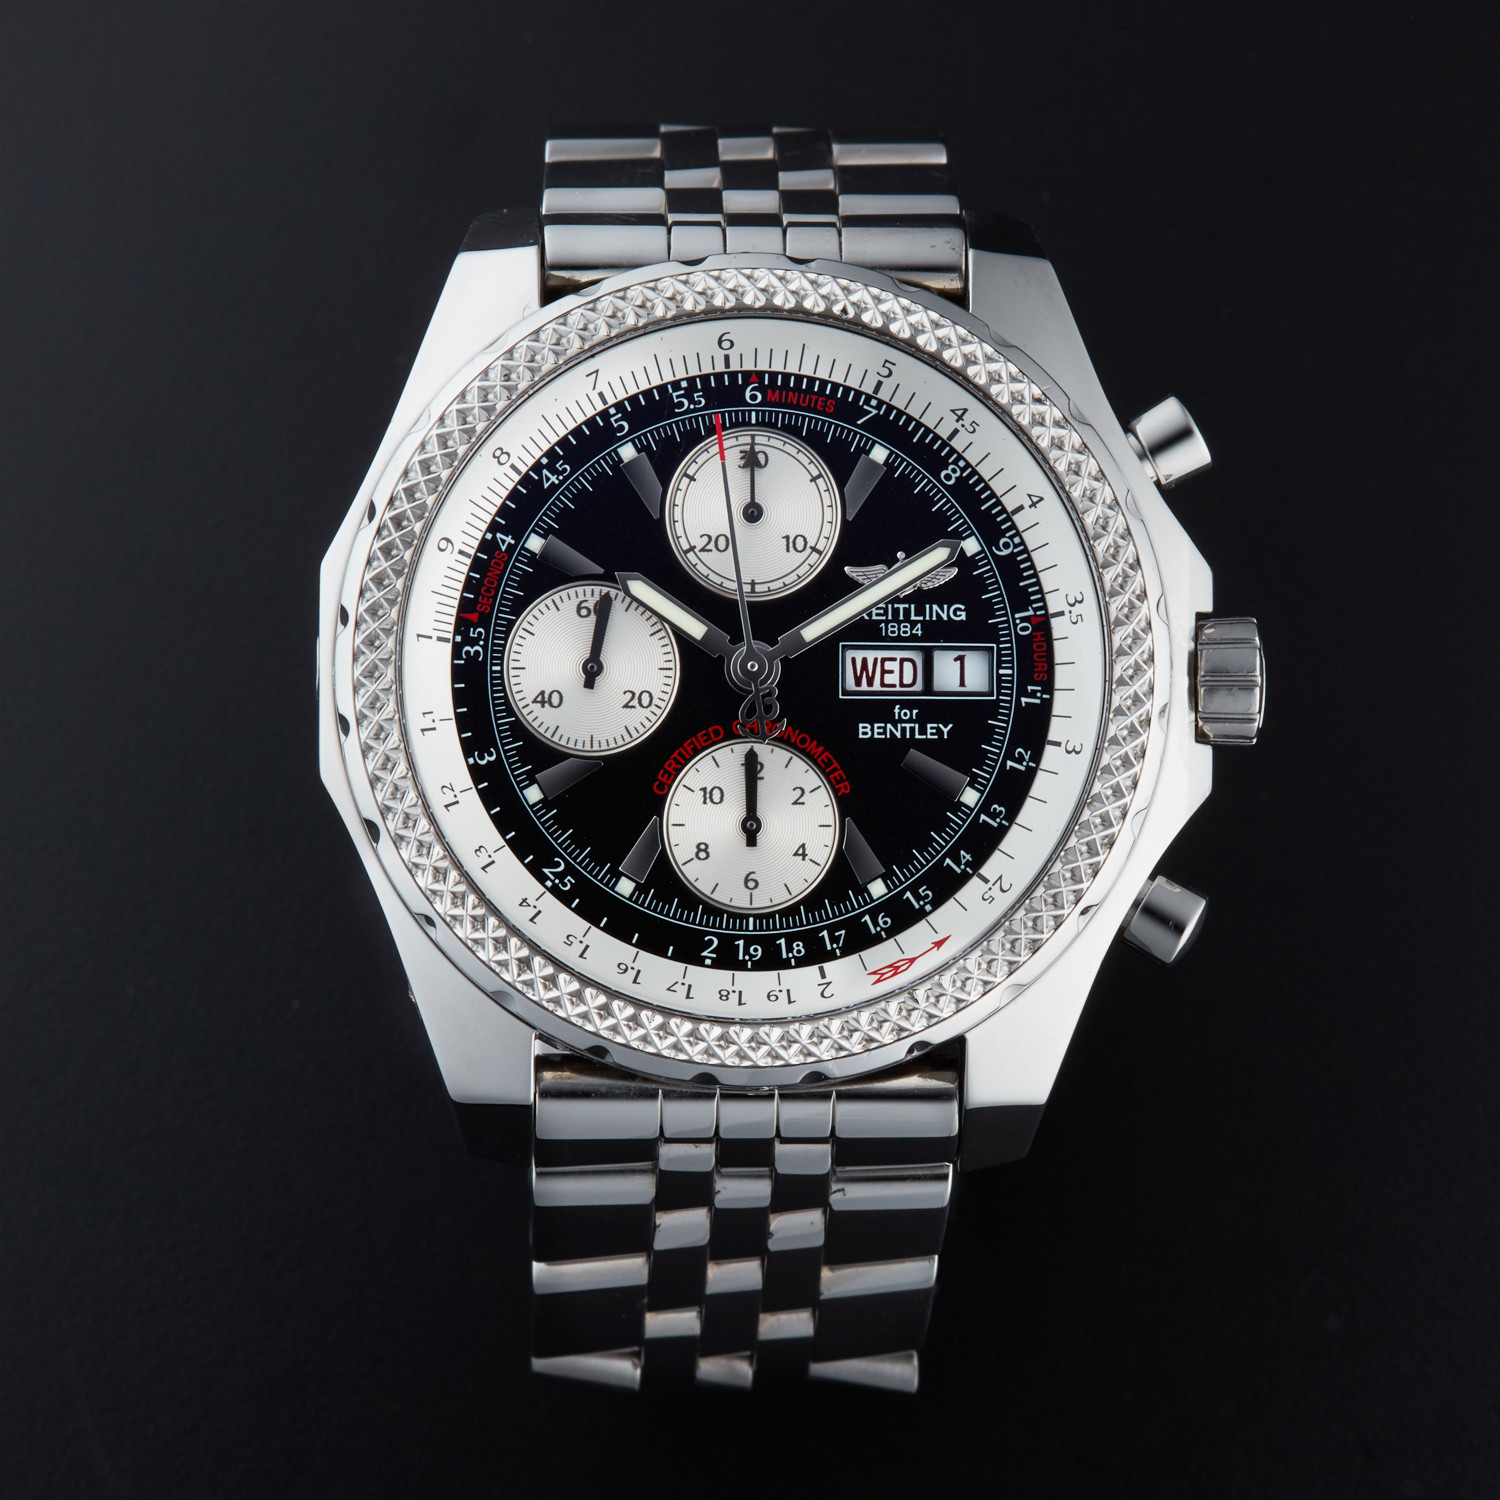 Breitling Bentley Gt Wristwatches: Breitling Bentley GT Watches Ca